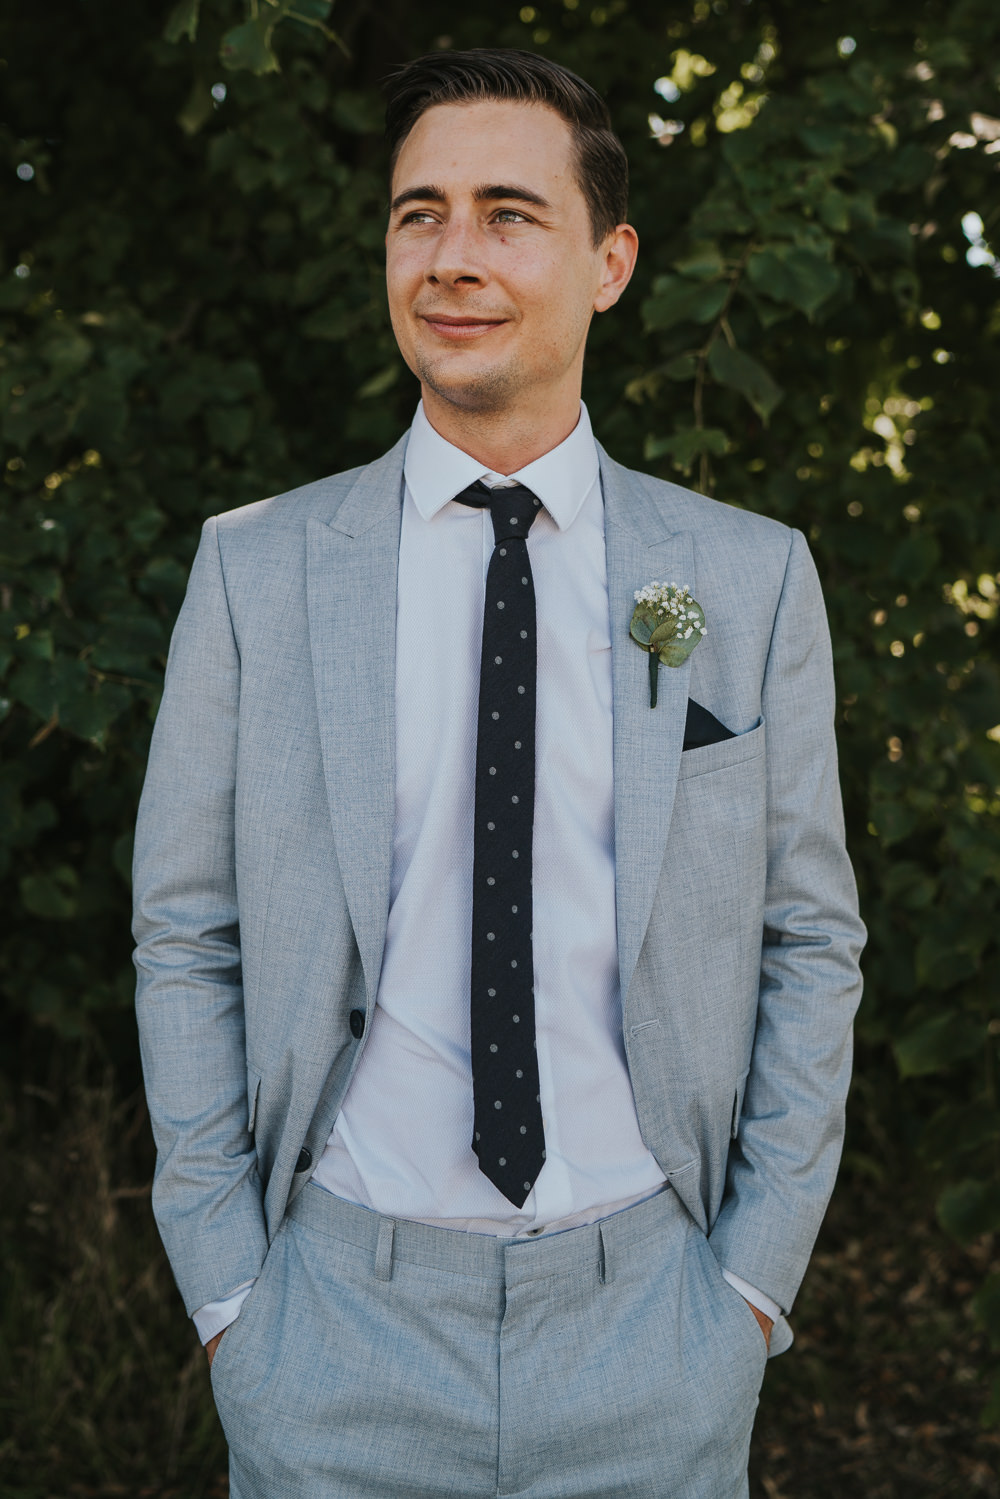 Intimate Outdoor Natural Relaxed Laid Back Summer Groom Grey Suit | Prested Hall Wedding Grace Elizabeth Photography